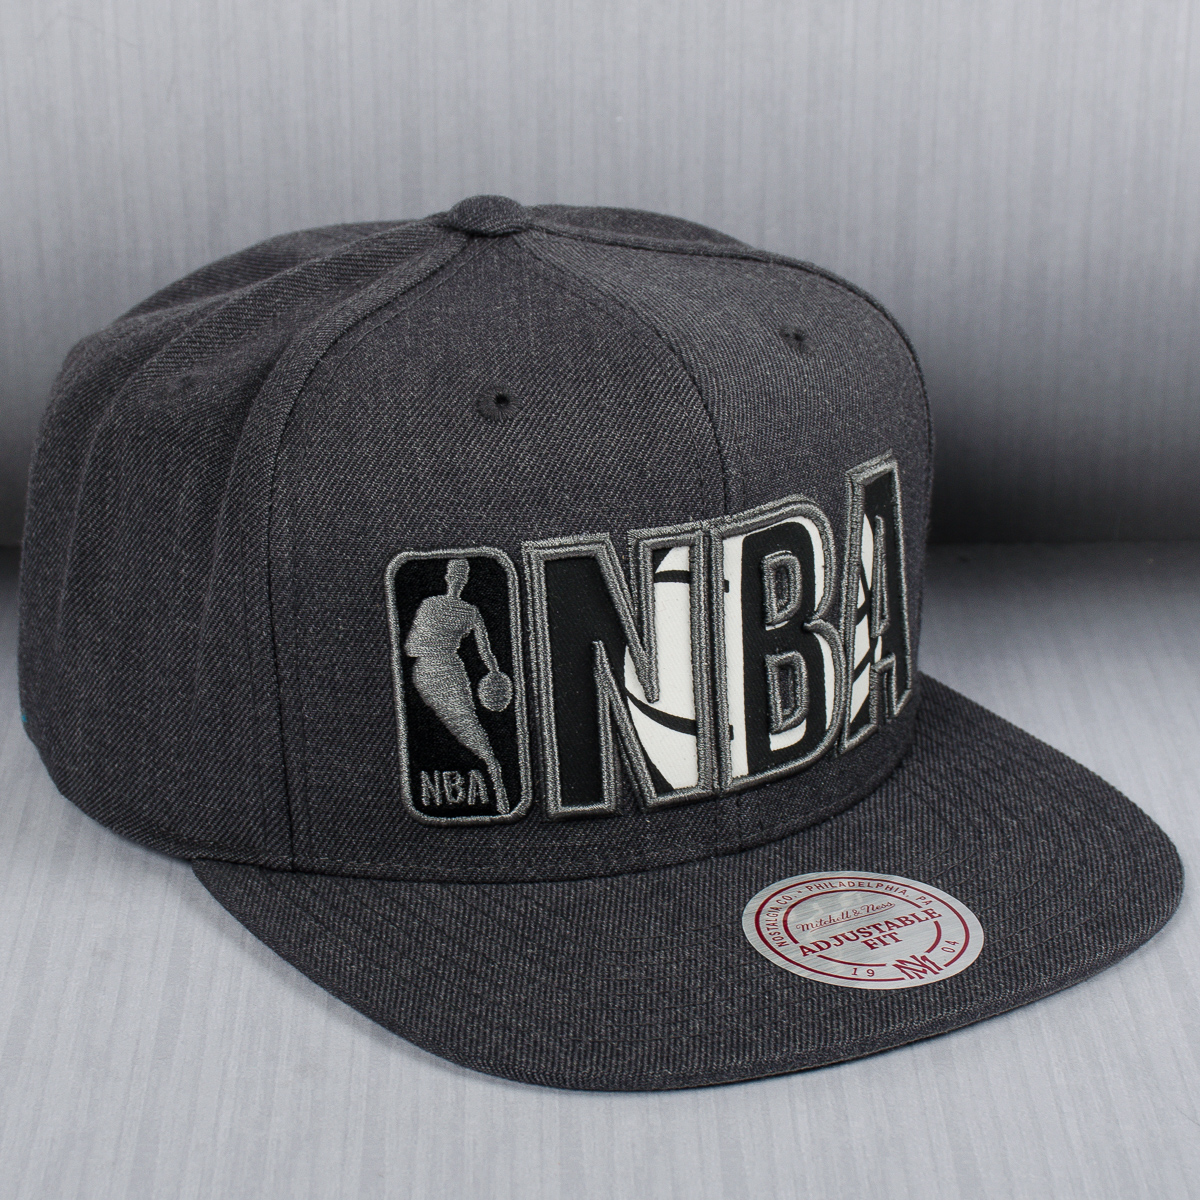 ... low price mitchell ness nba brooklyn nets insider reflective snapback  cap d1640 97e3f ... 648a0412e74c